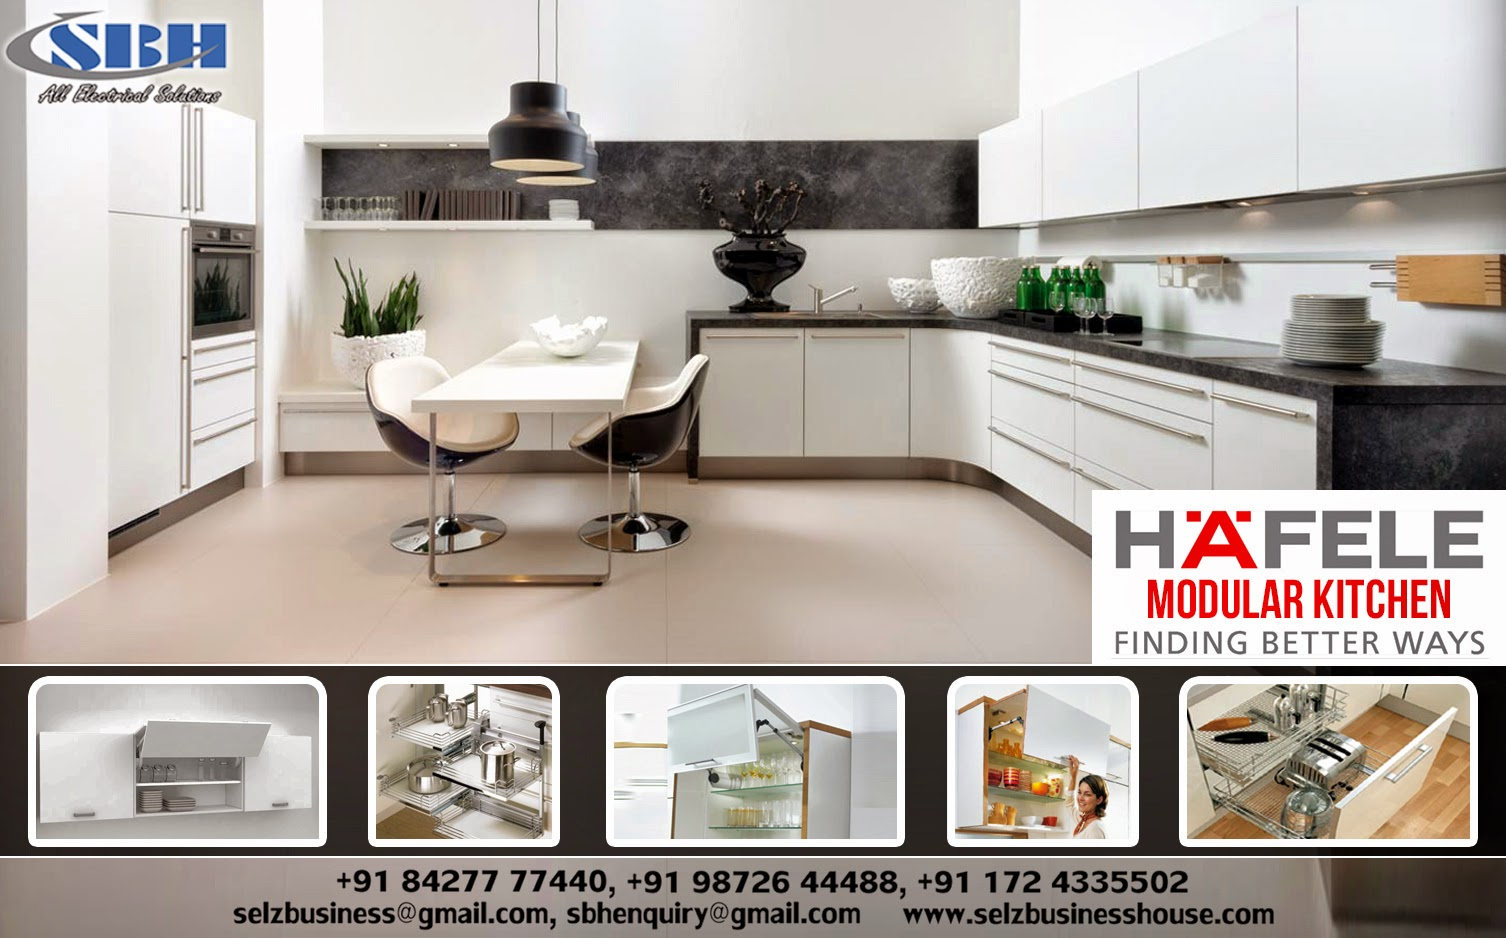 Selz Business House A Kitchen For Every Need Hafele Modular Kitchen